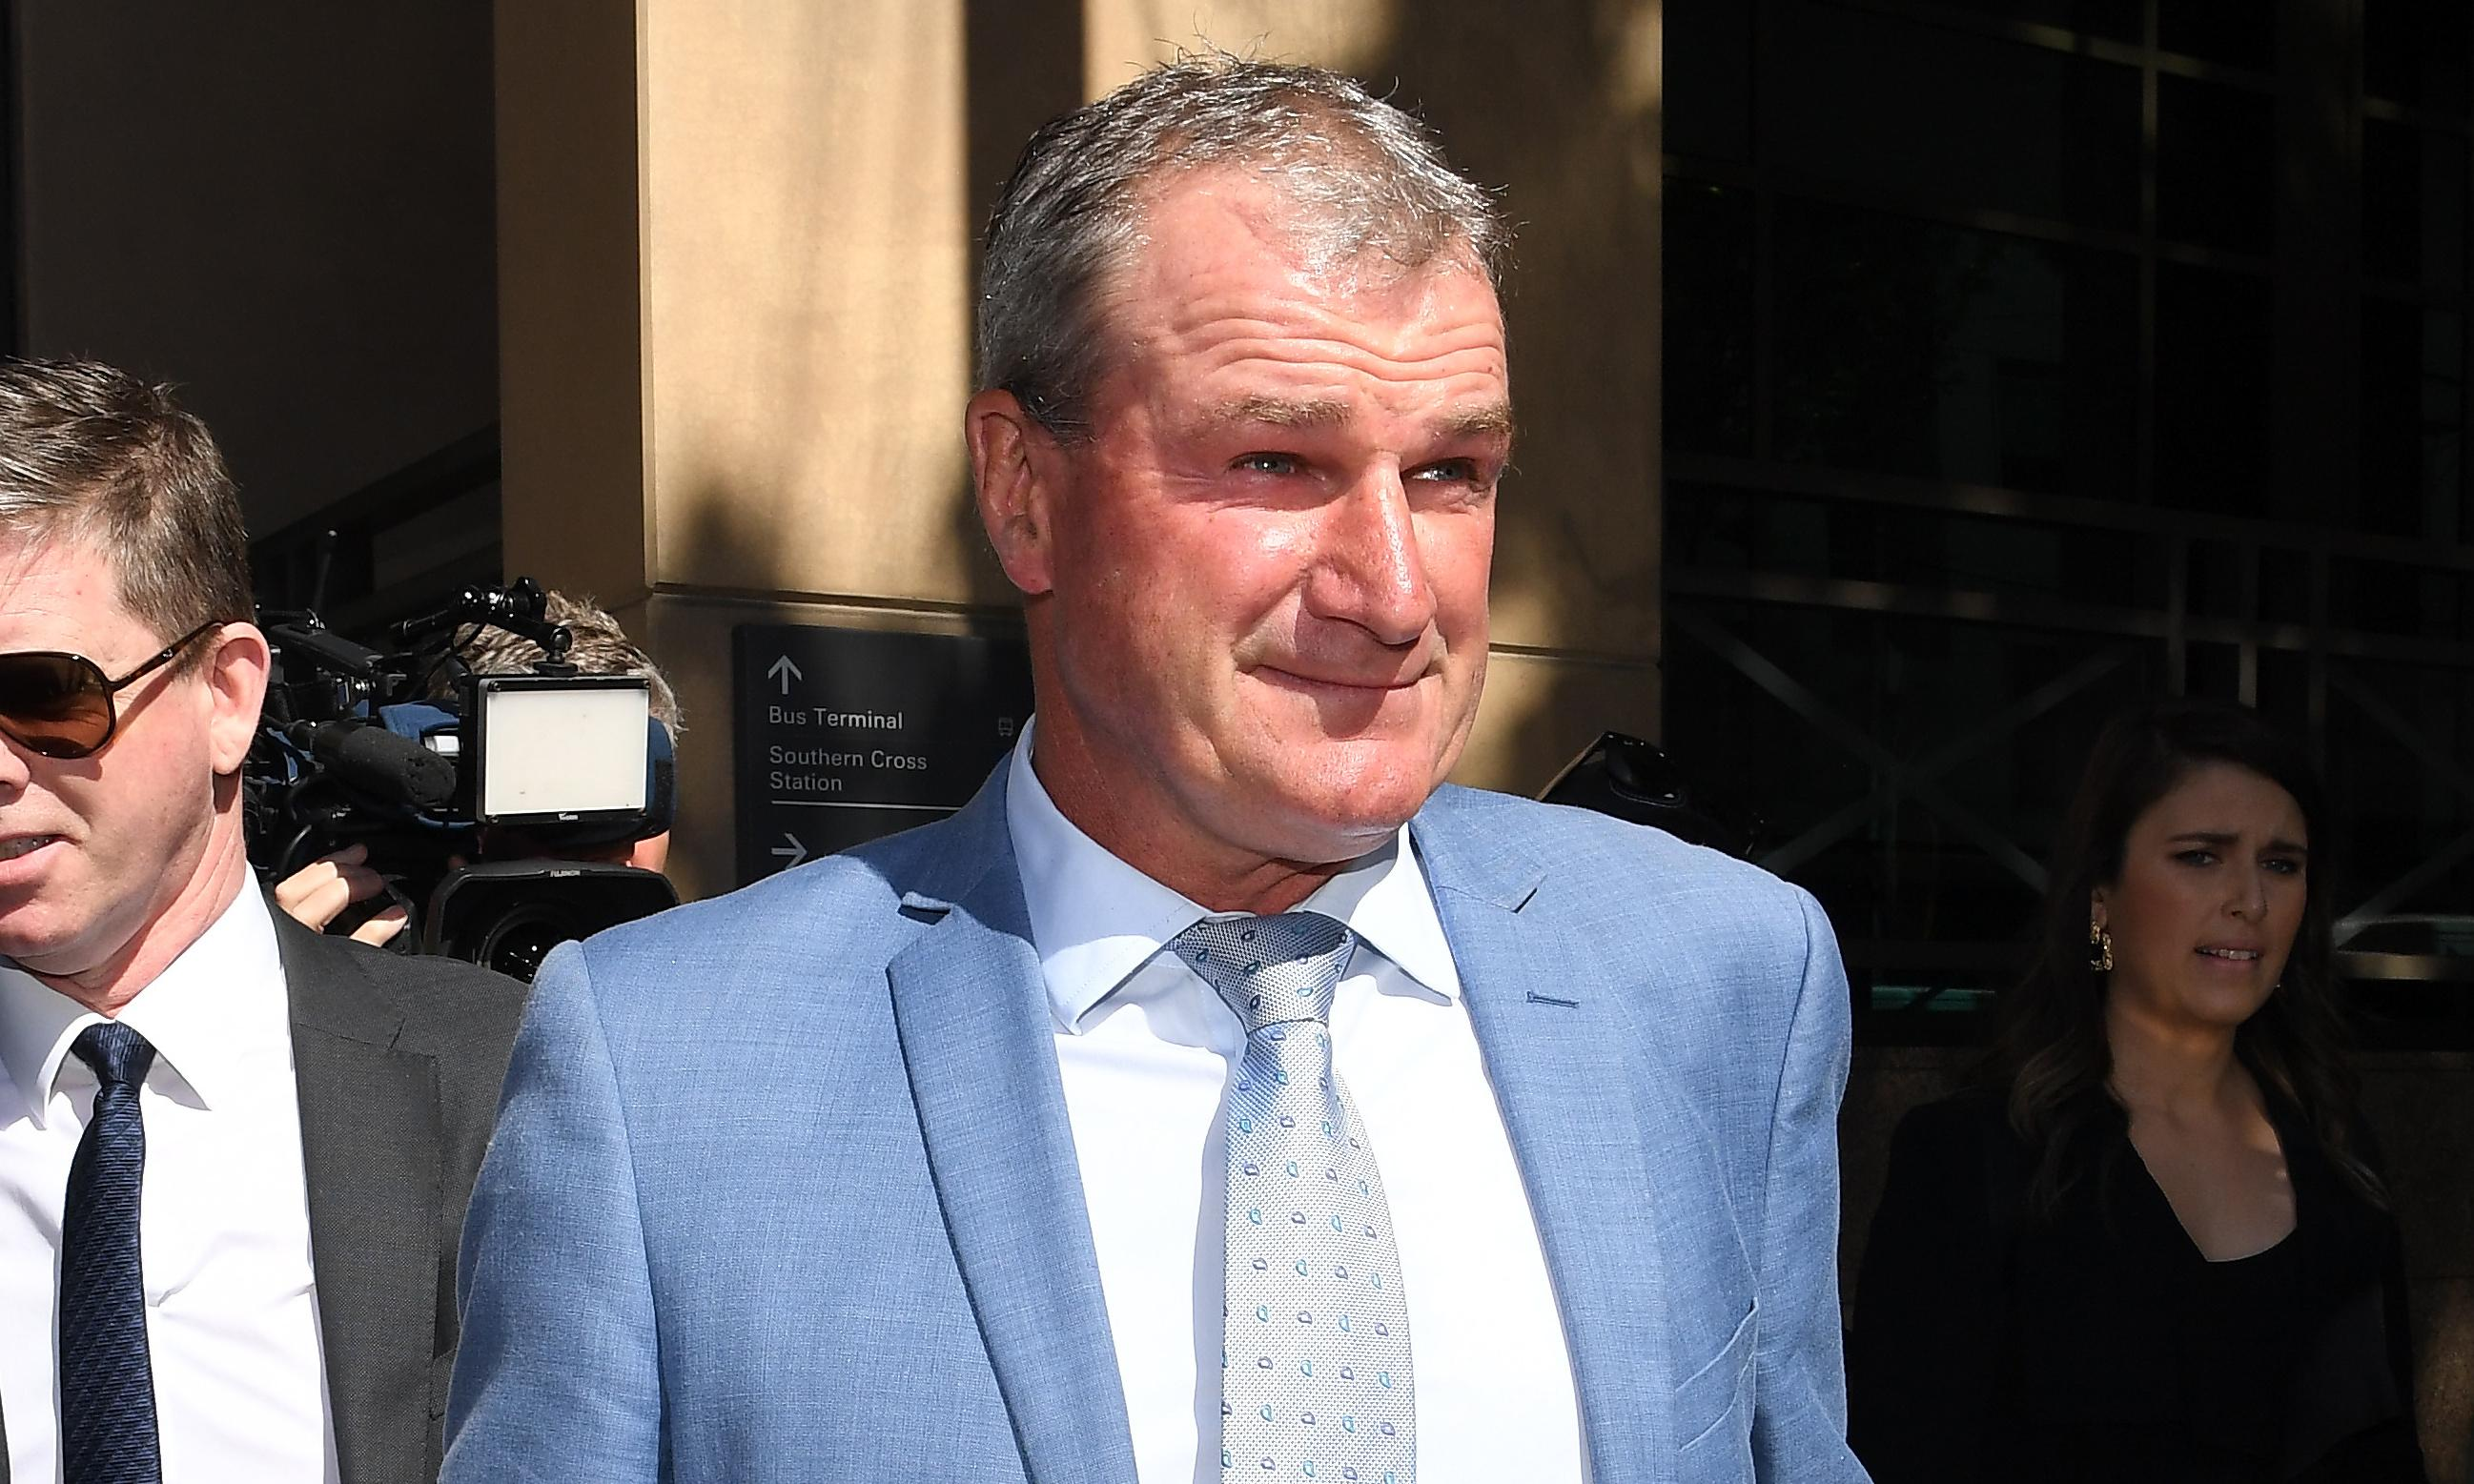 Darren Weir's Melbourne Cup horse given electric shocks on race day, court documents allege